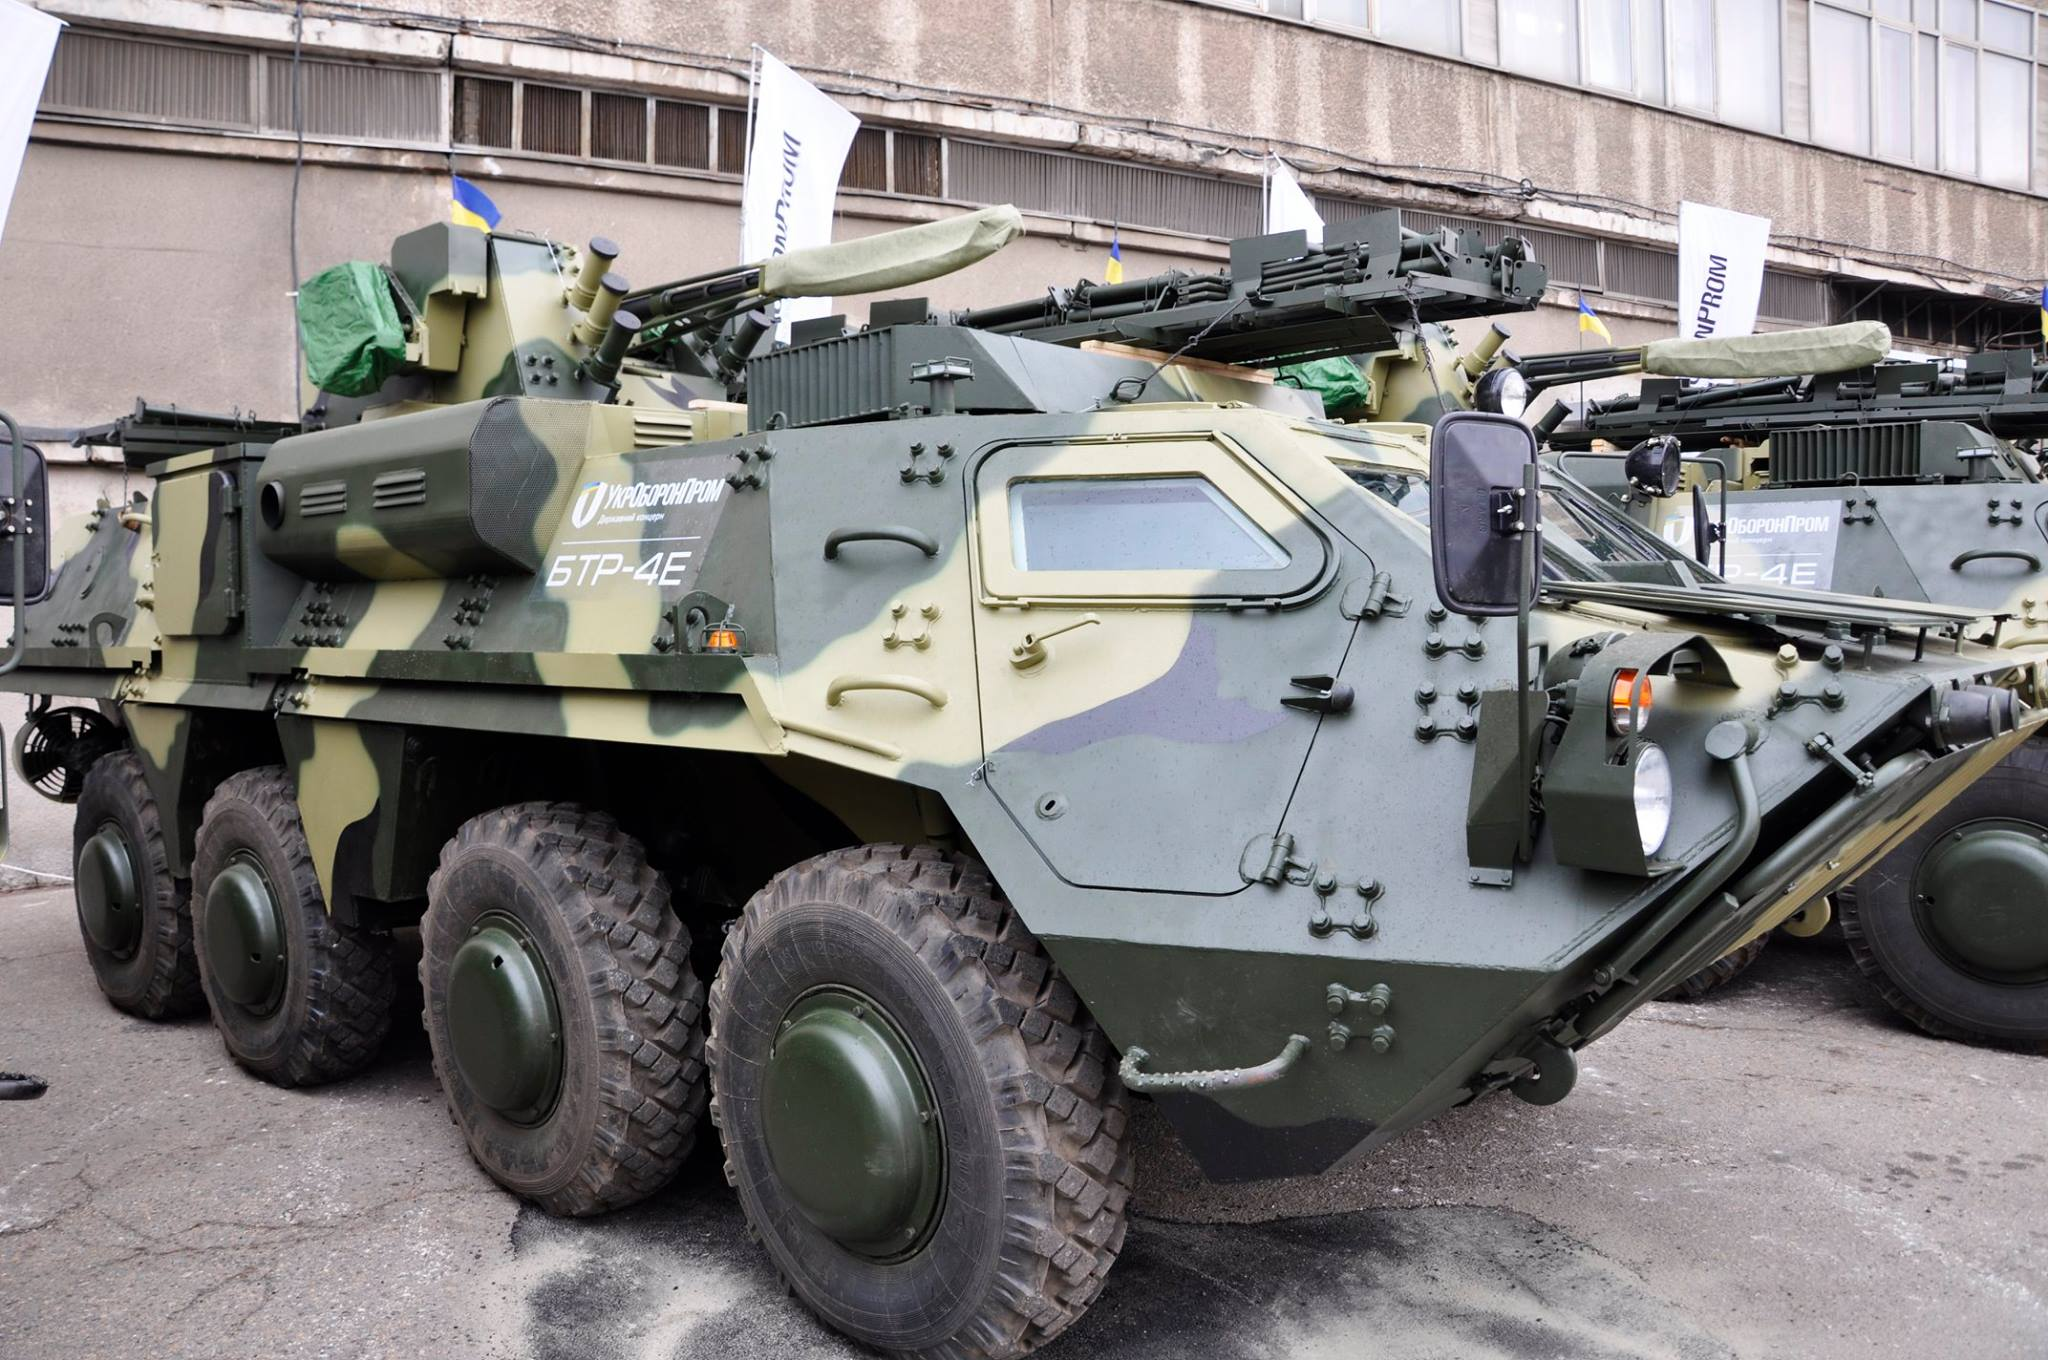 BTR-4E pansarfordon